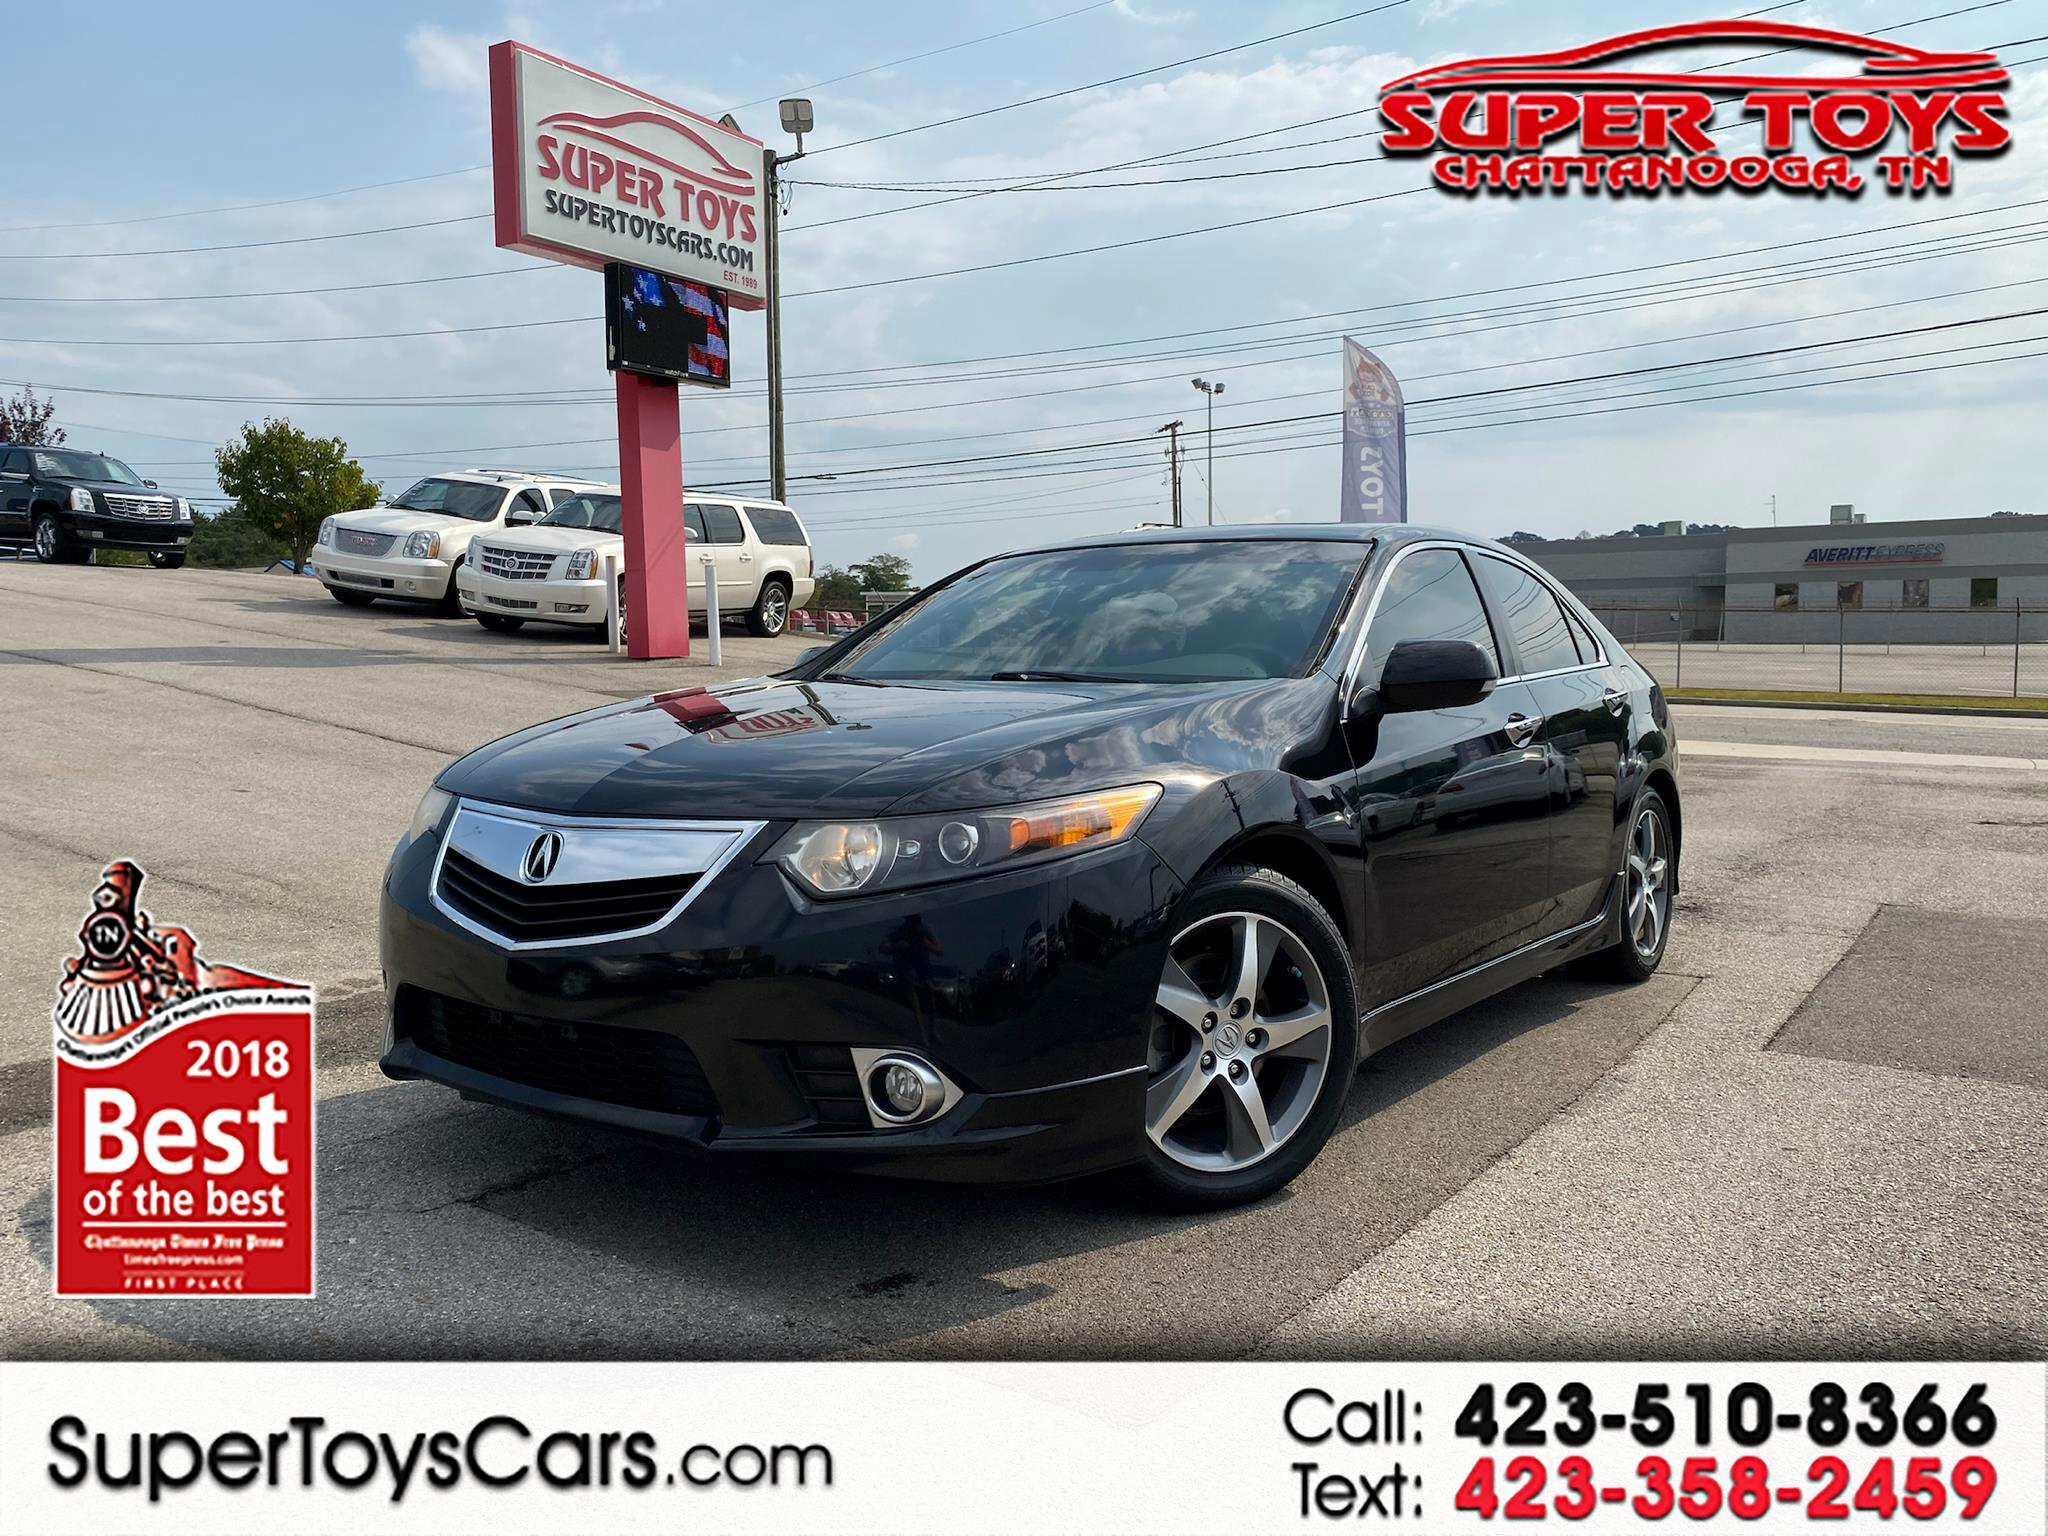 2013 Acura TSX 4dr Sdn I4 Auto Special Edition